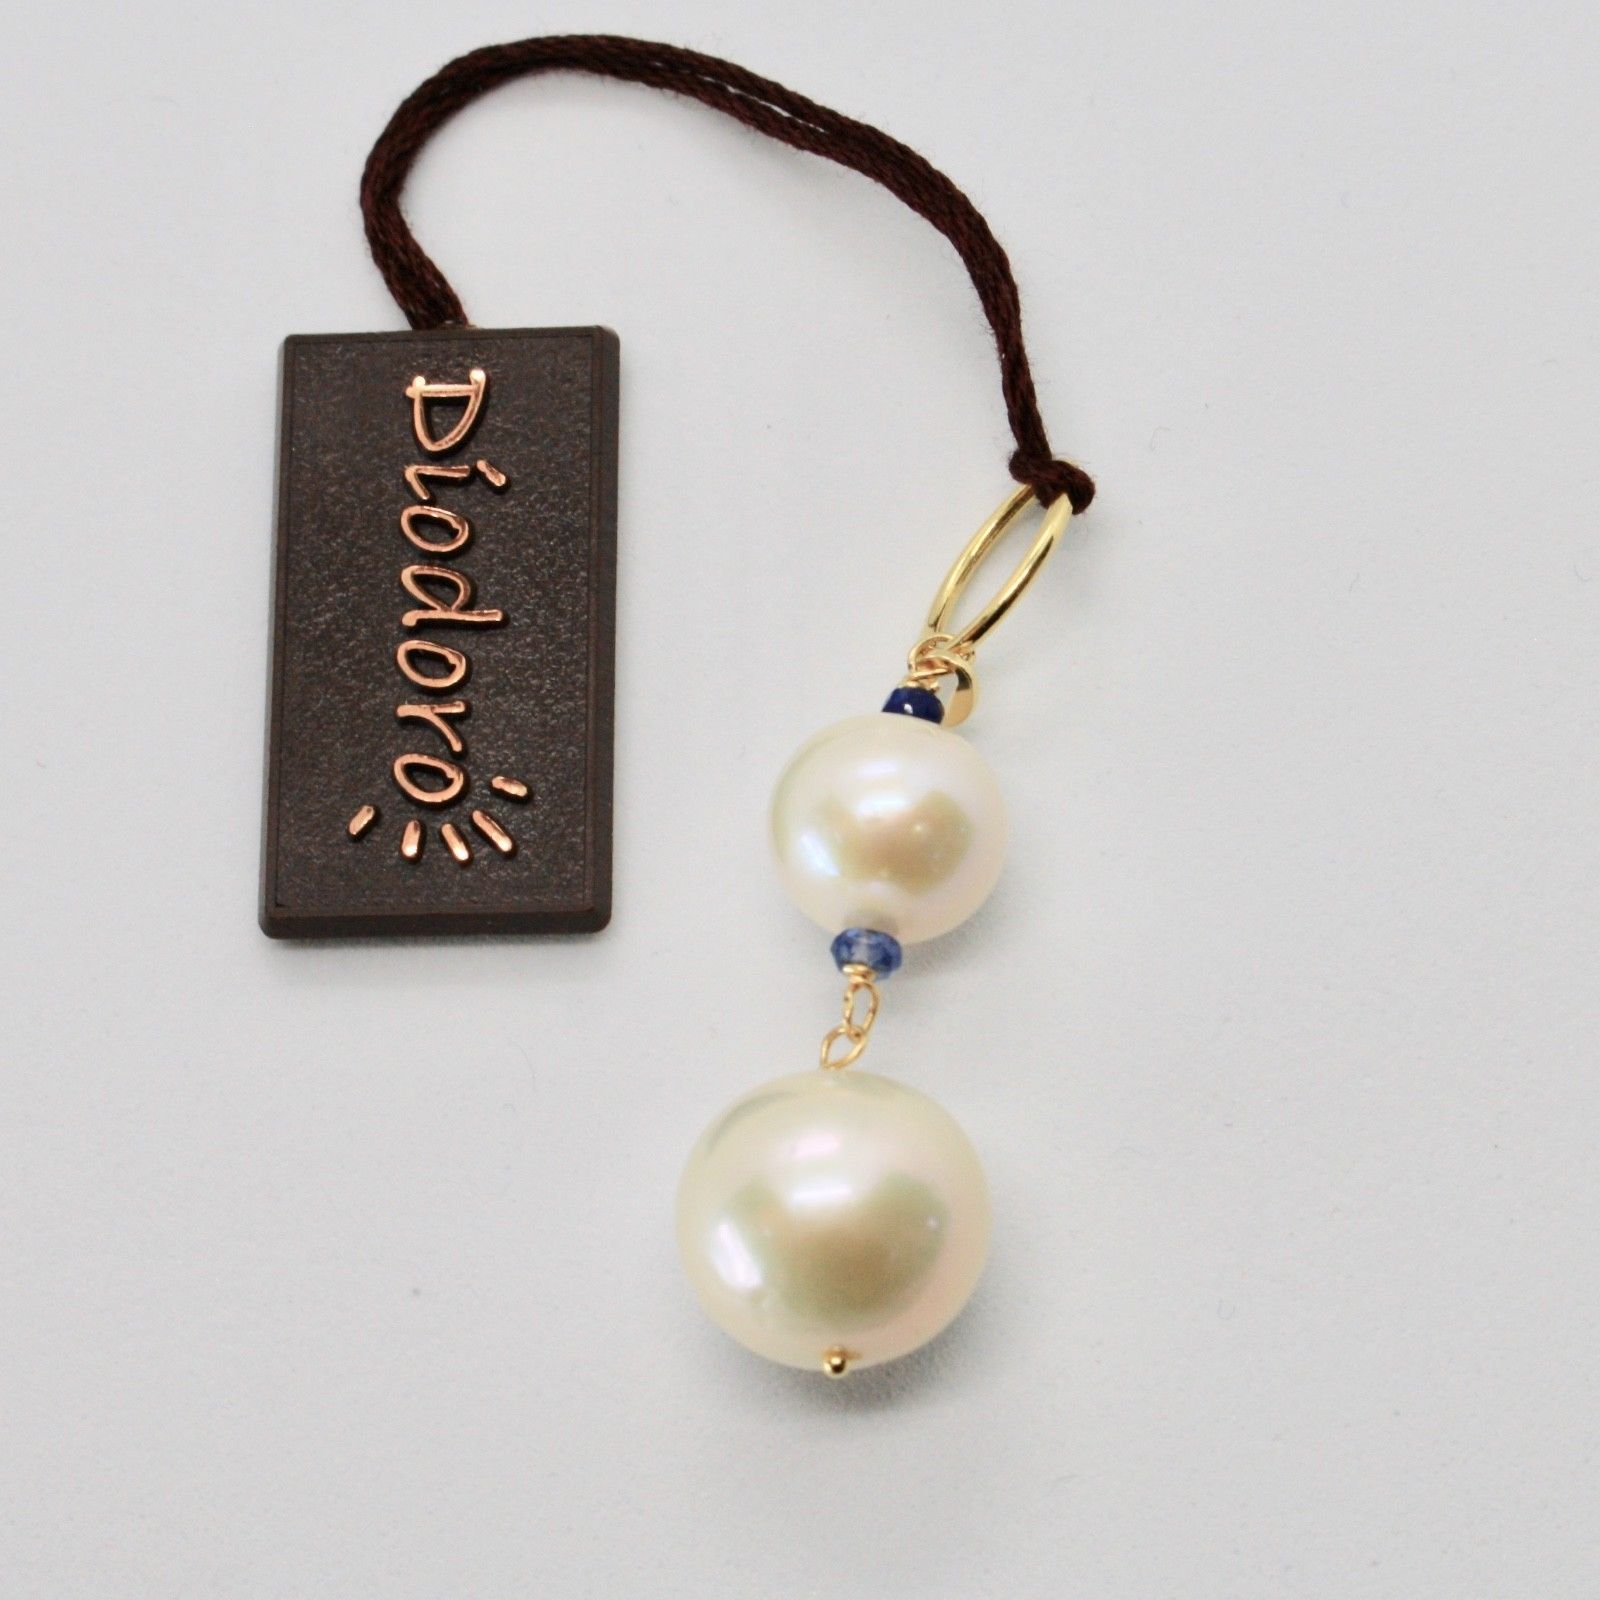 SOLID 18K YELLOW GOLD PENDANT WITH 2 WHITE FW PEARL AND SAPPHIRE MADE IN ITALY